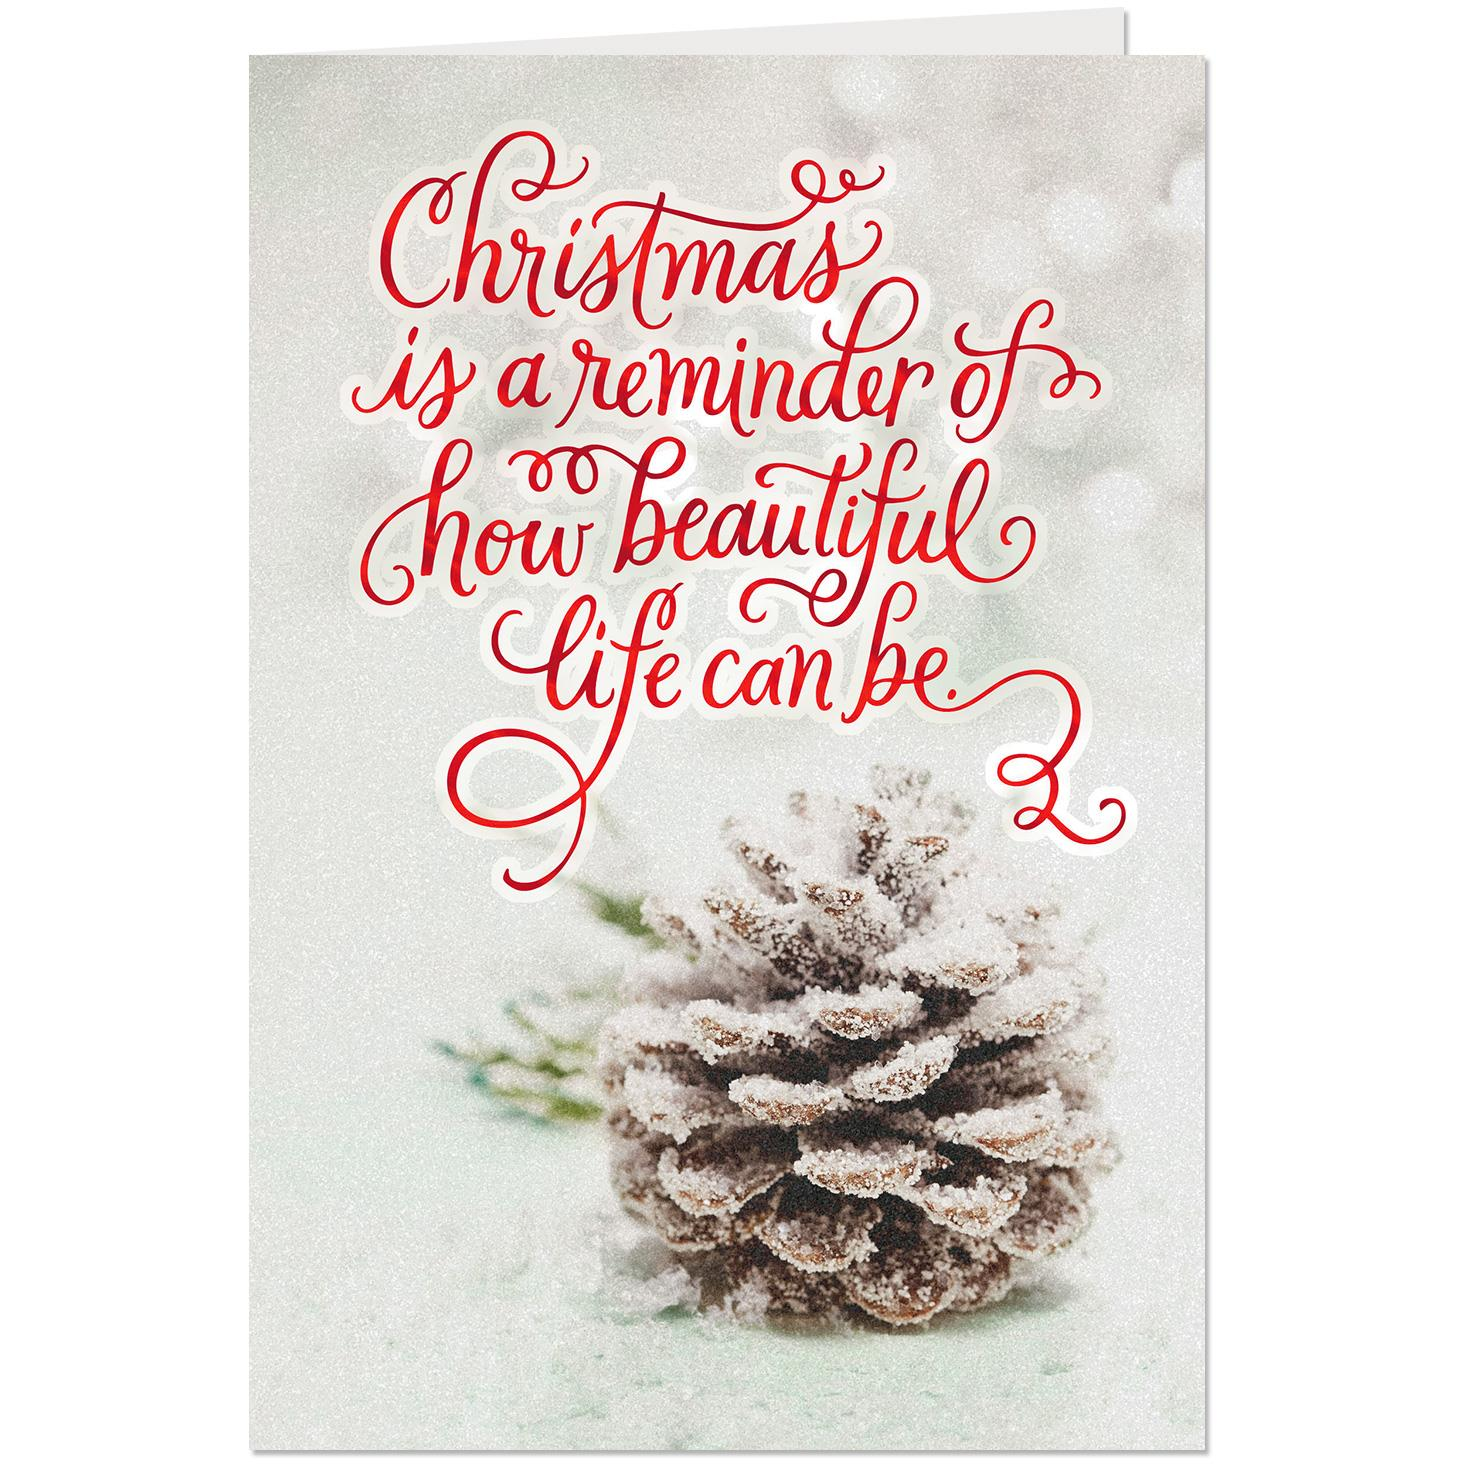 Our Beautiful Life Together Romantic Christmas Card Greeting Cards